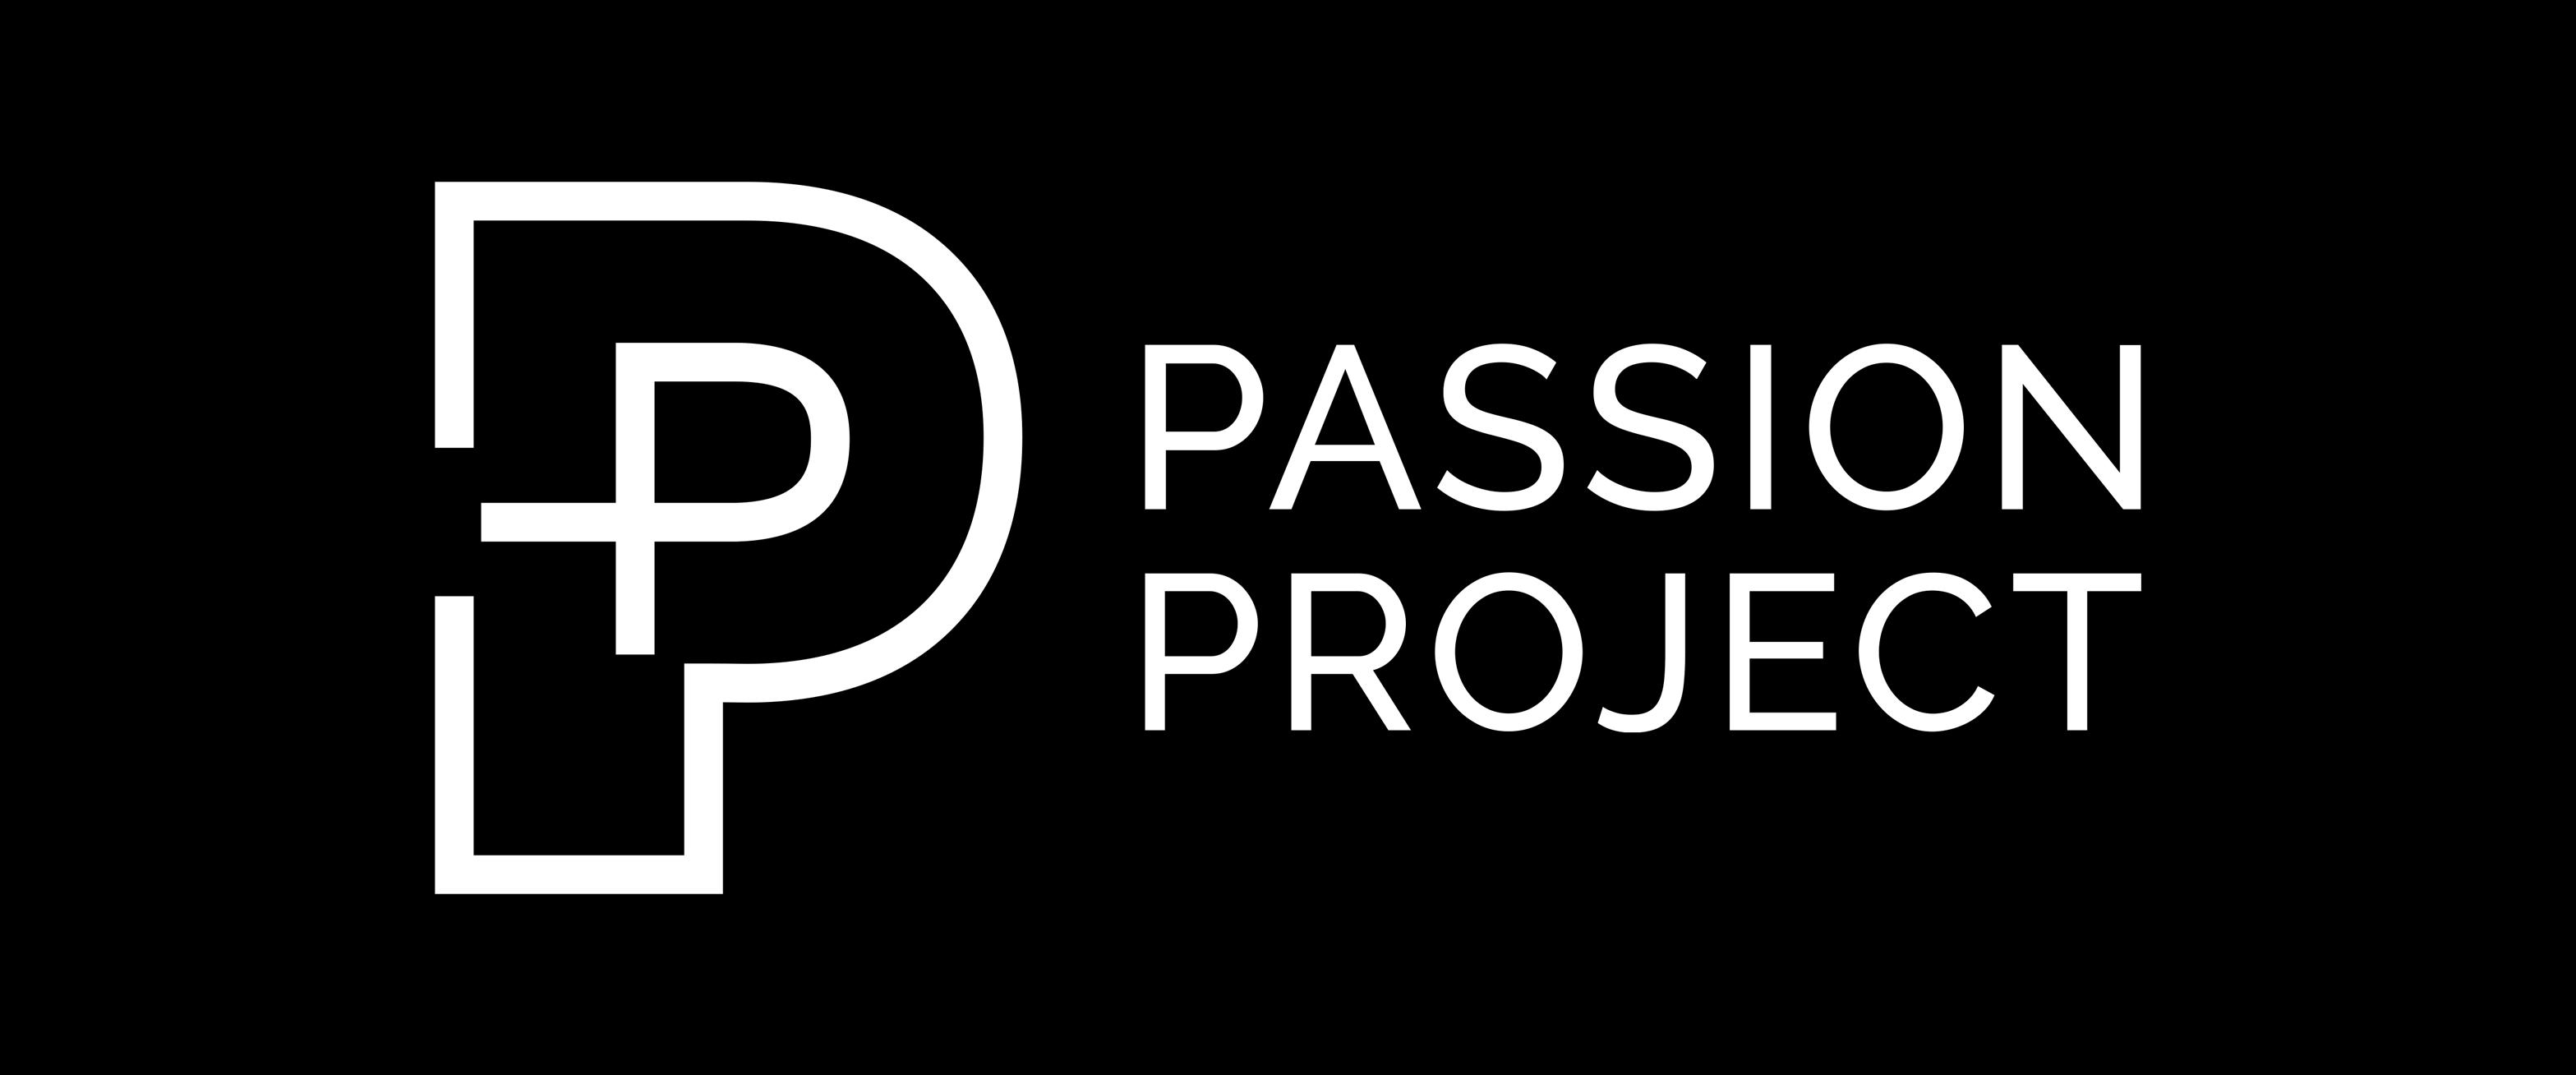 Passion Project Logo